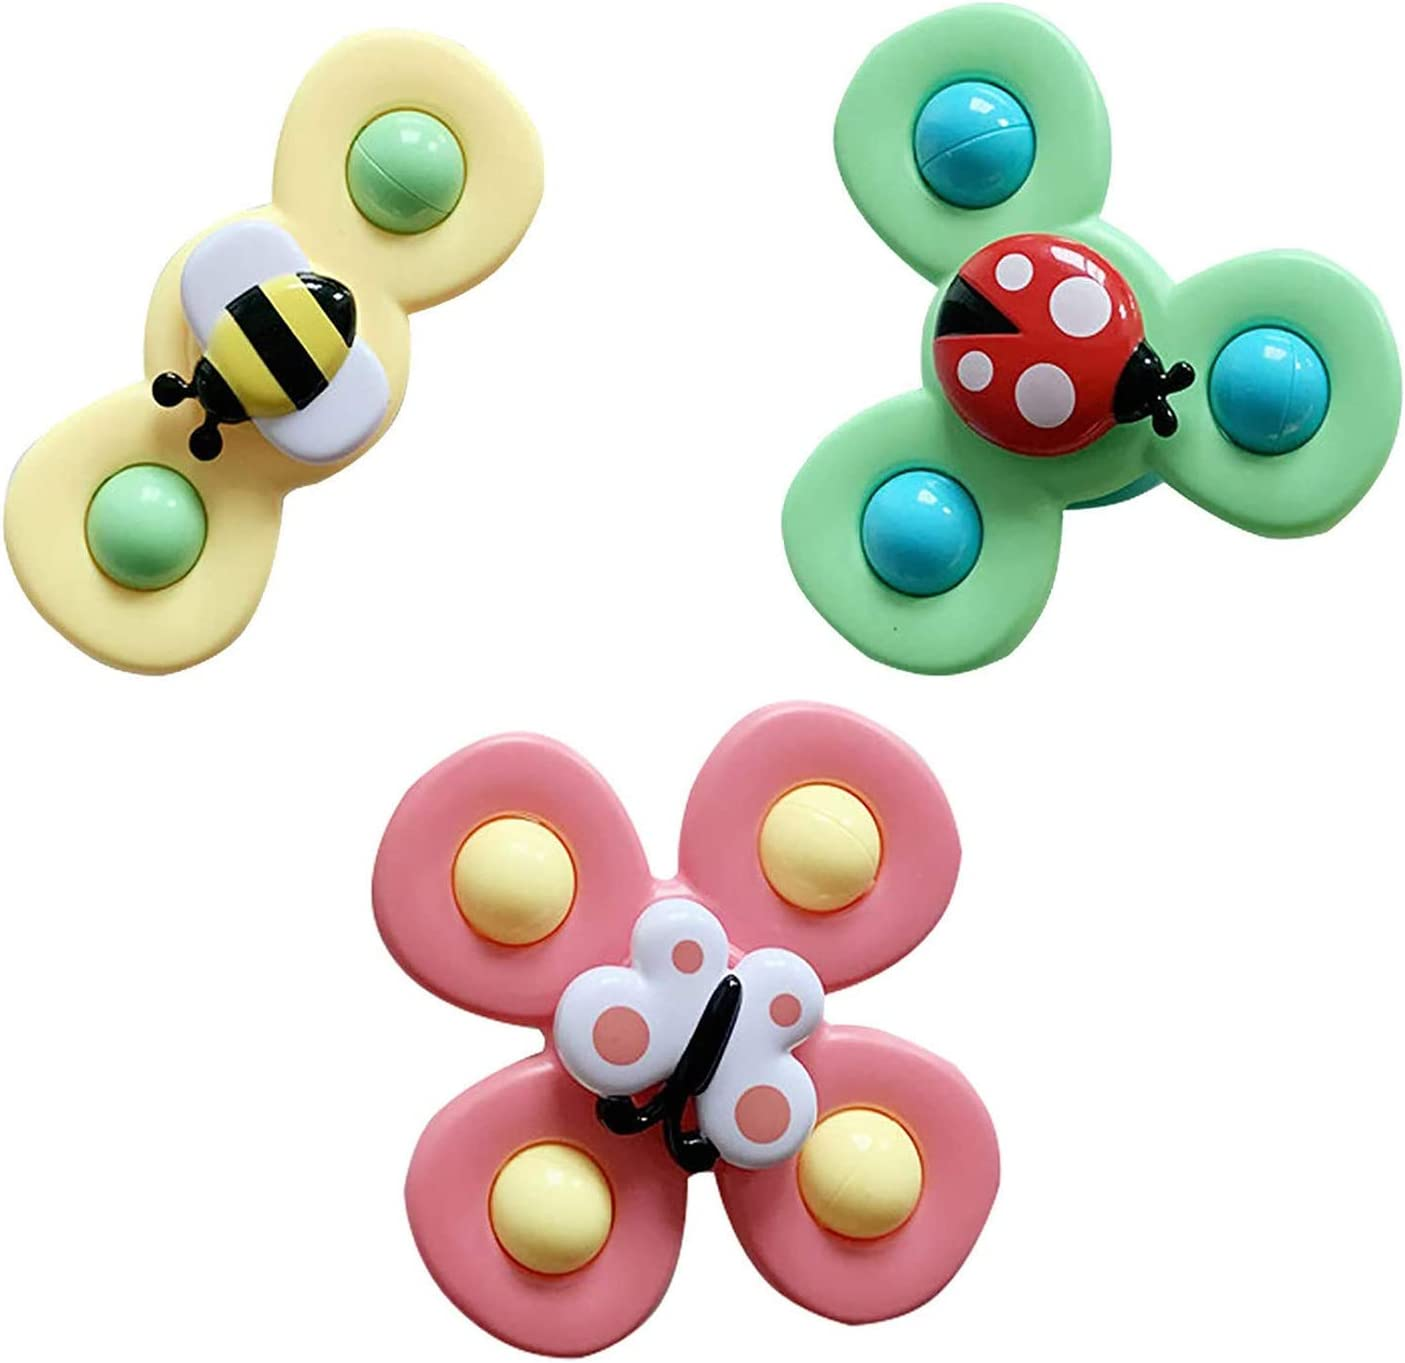 Baby Child Spinning Top Toy, Spin Sucker Suction Cup Animal Bath Toys Turntable Spinning Windmill Stress Relief Frisbee Toy Table Sucker Early Learner (3Pcs-Bee Ladybug Butterfly)